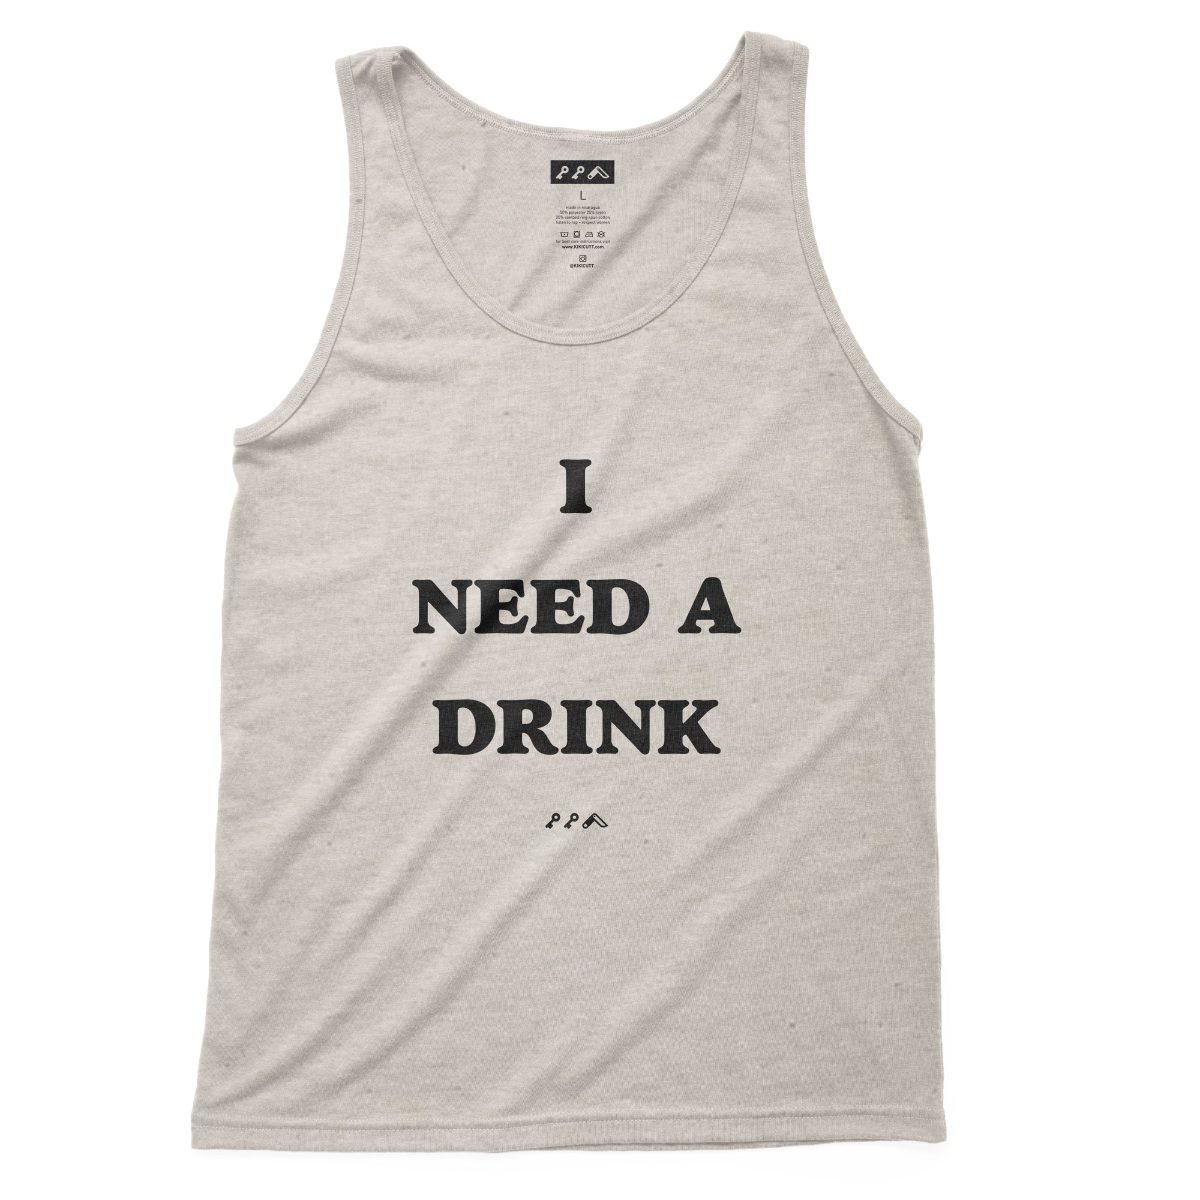 I NEED A DRINK funny sunday funday drinking tank top in oatmeal